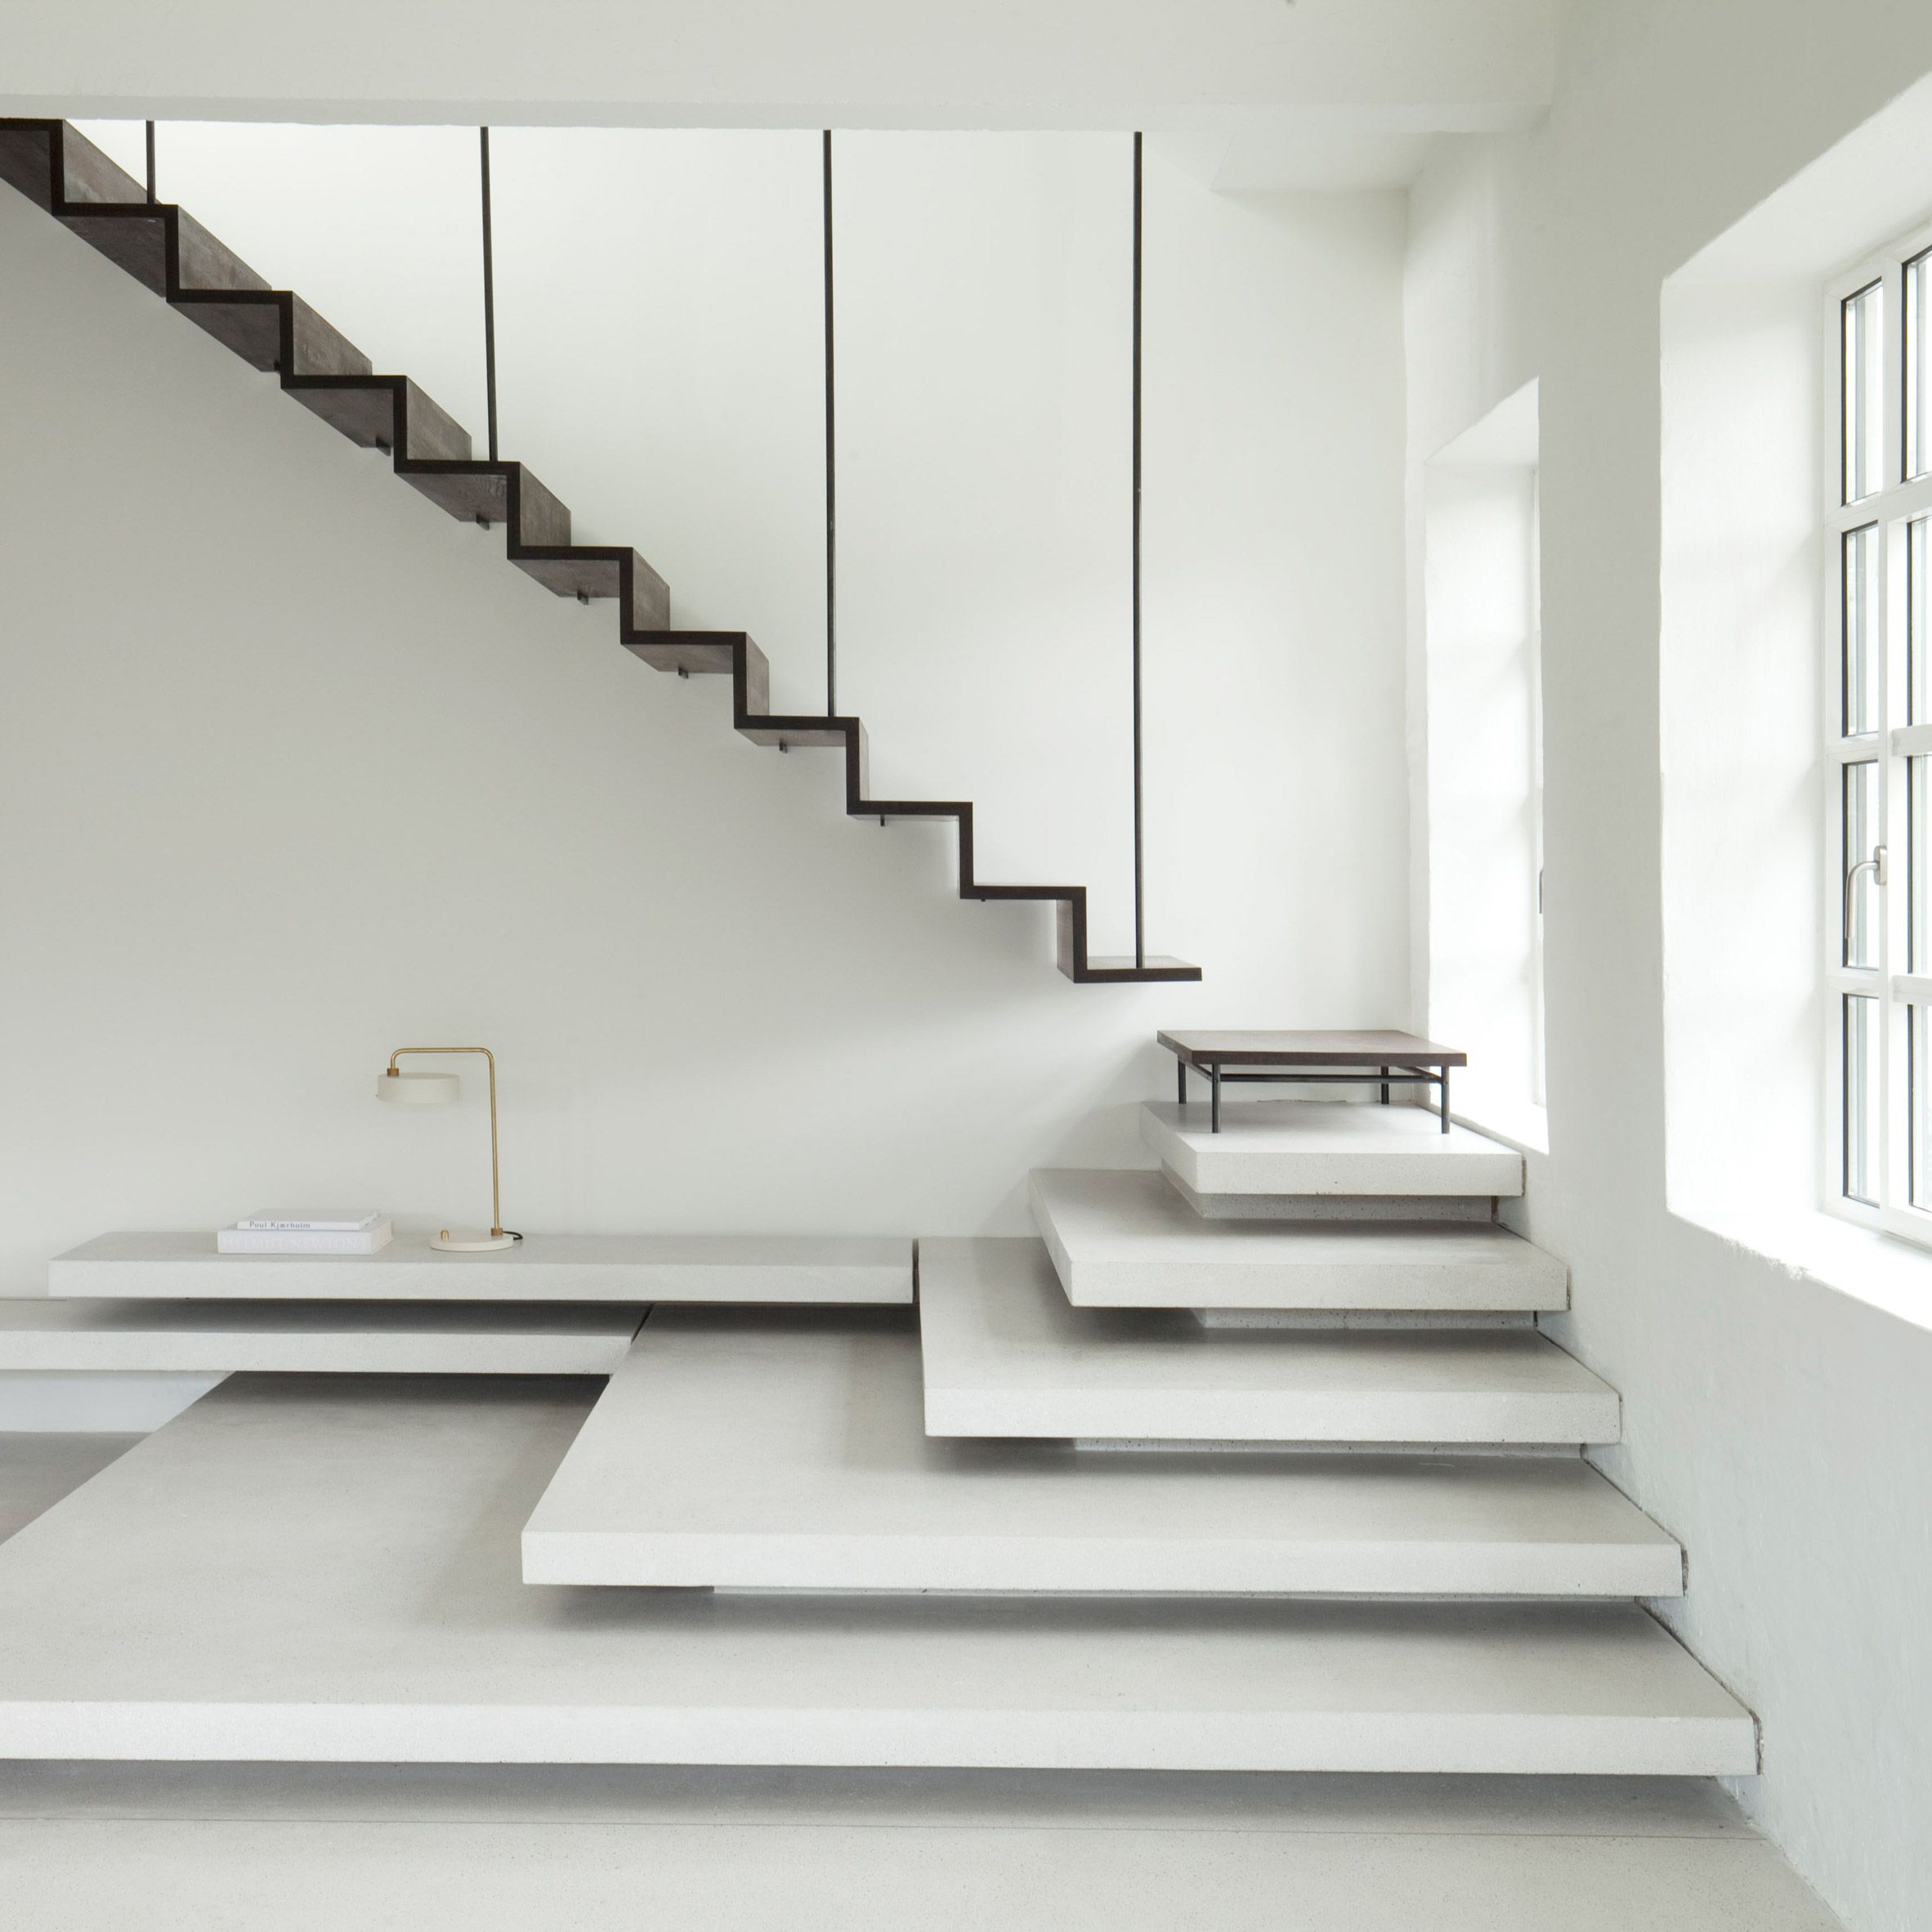 Staircases: Staircase Design You Need In Your Home